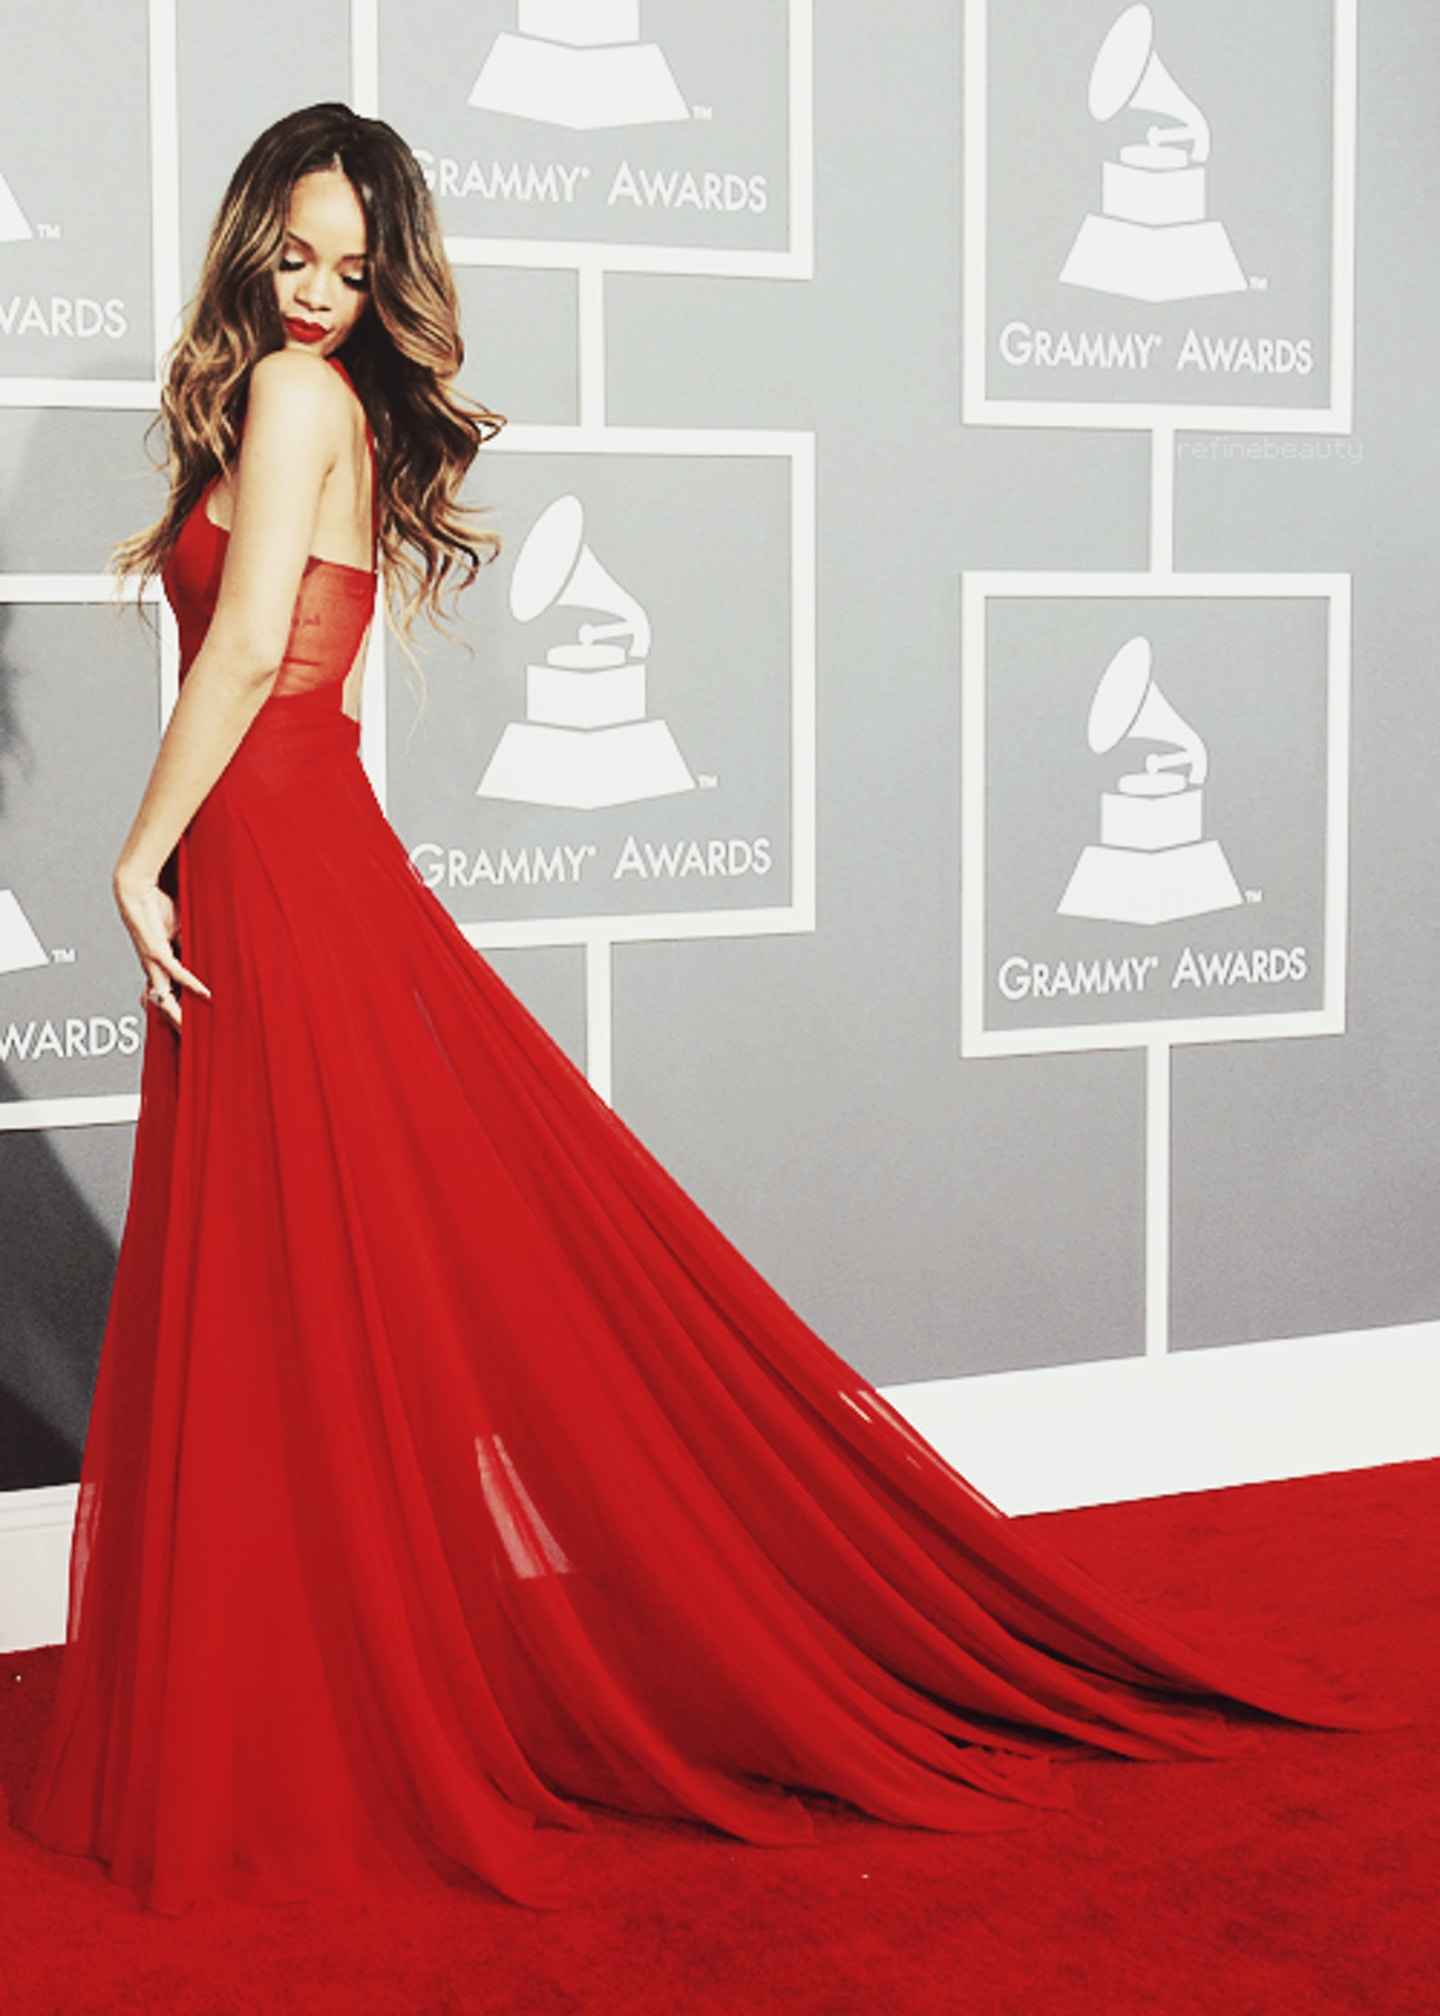 Best & Worst Dressed 2013 Grammy Awards